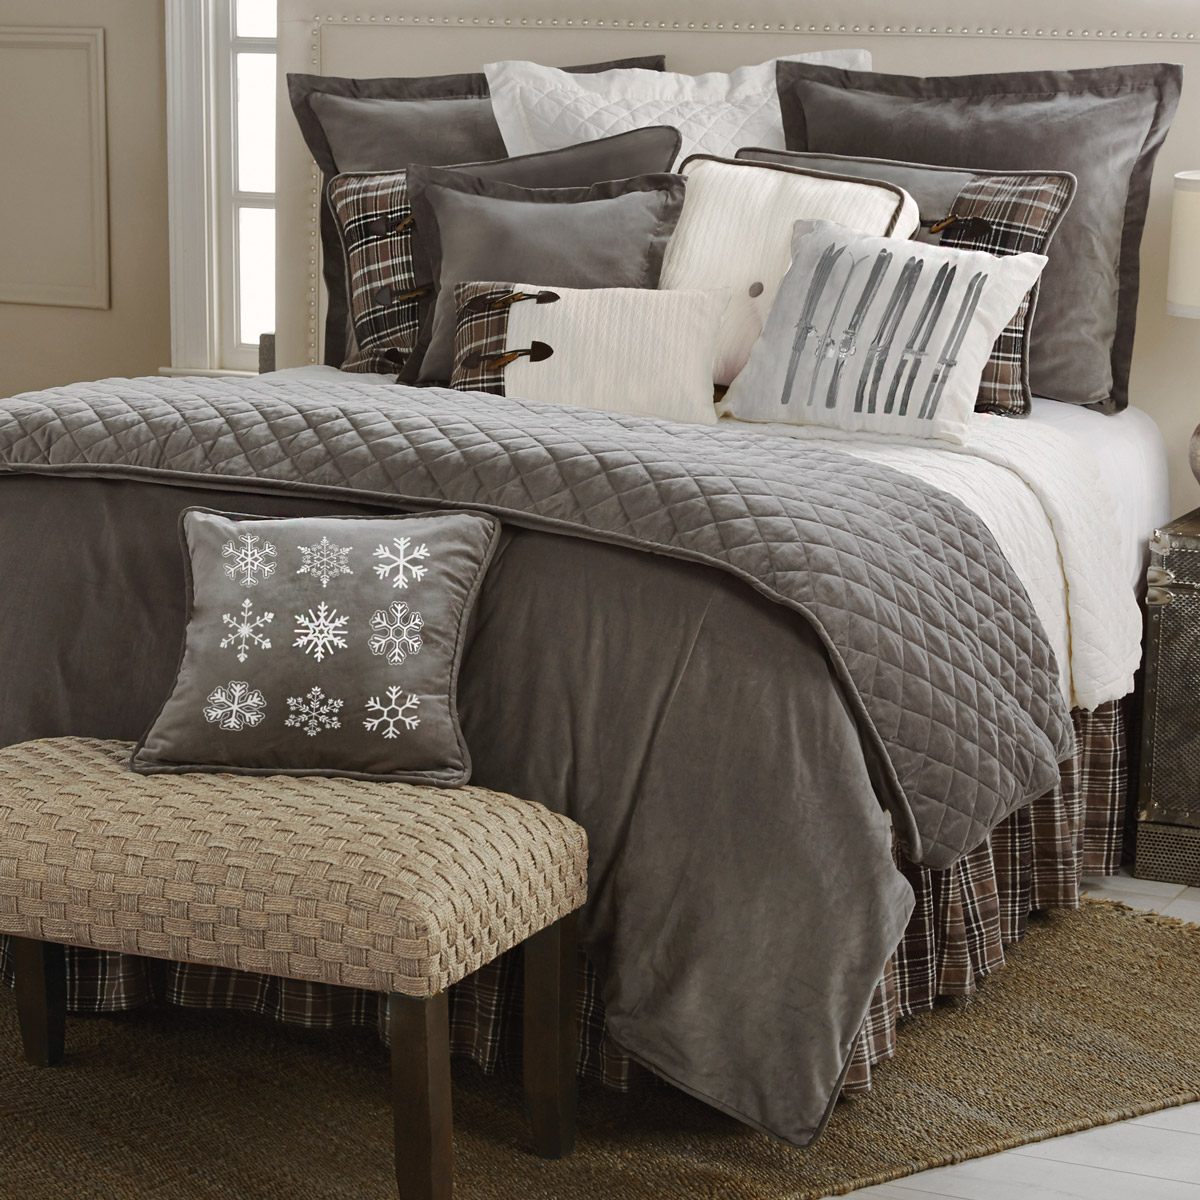 Black Forest Decor Silver mountain bed set - queen